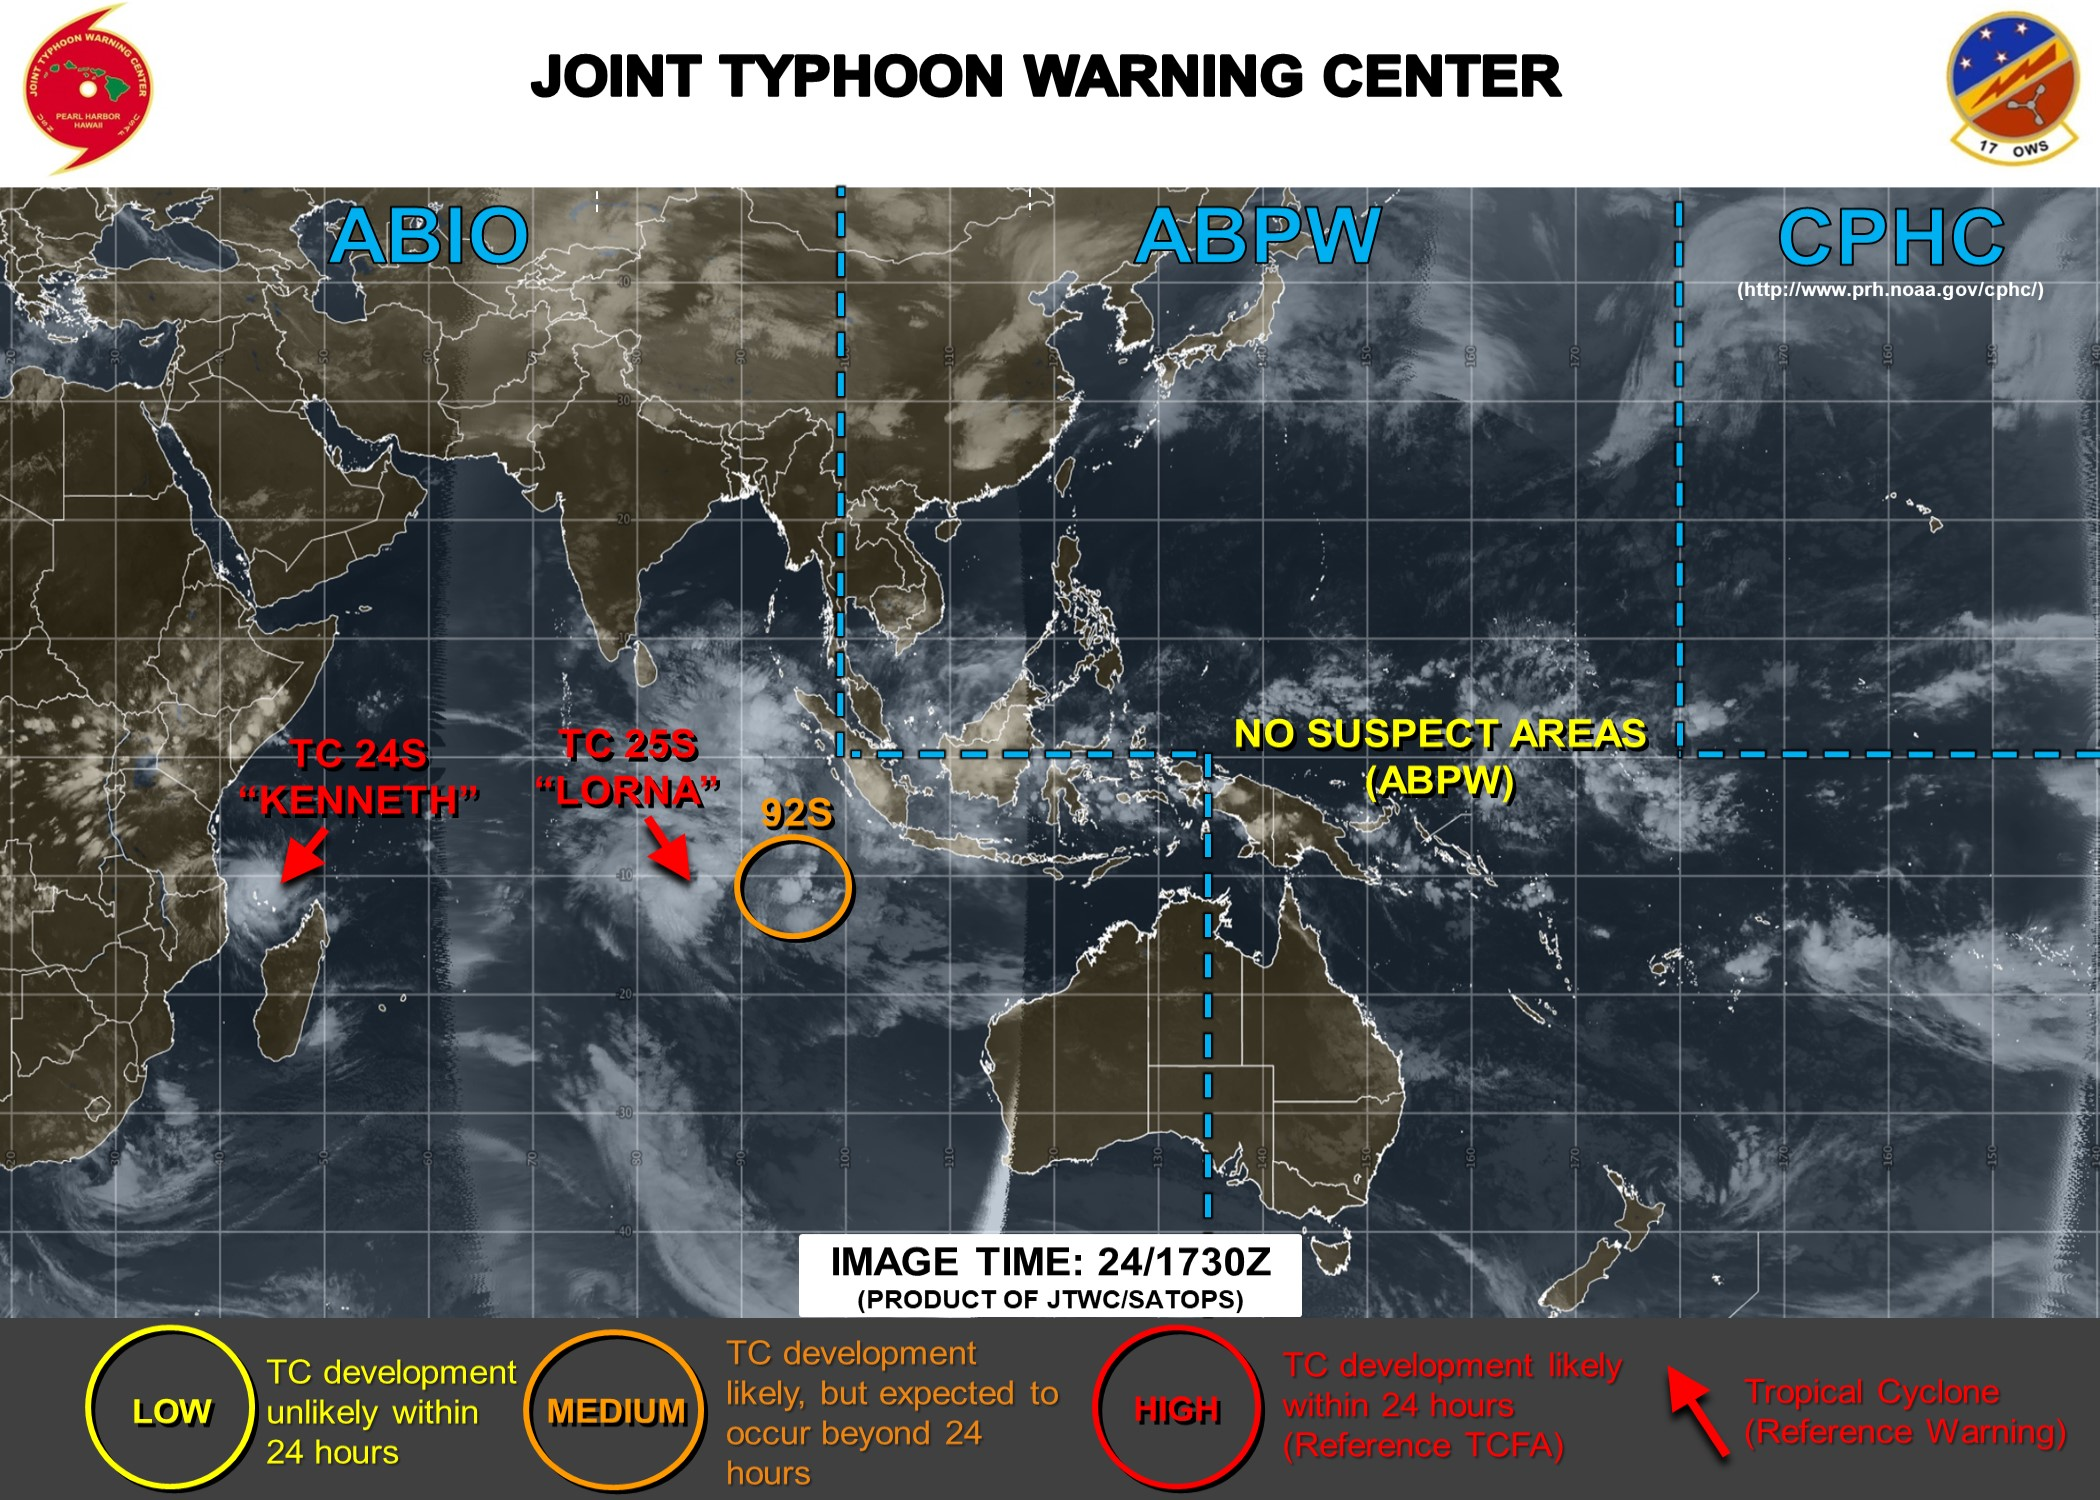 18UTC: INVEST 92S is now medium and may interact with TC LORNA(25S) after 48hours